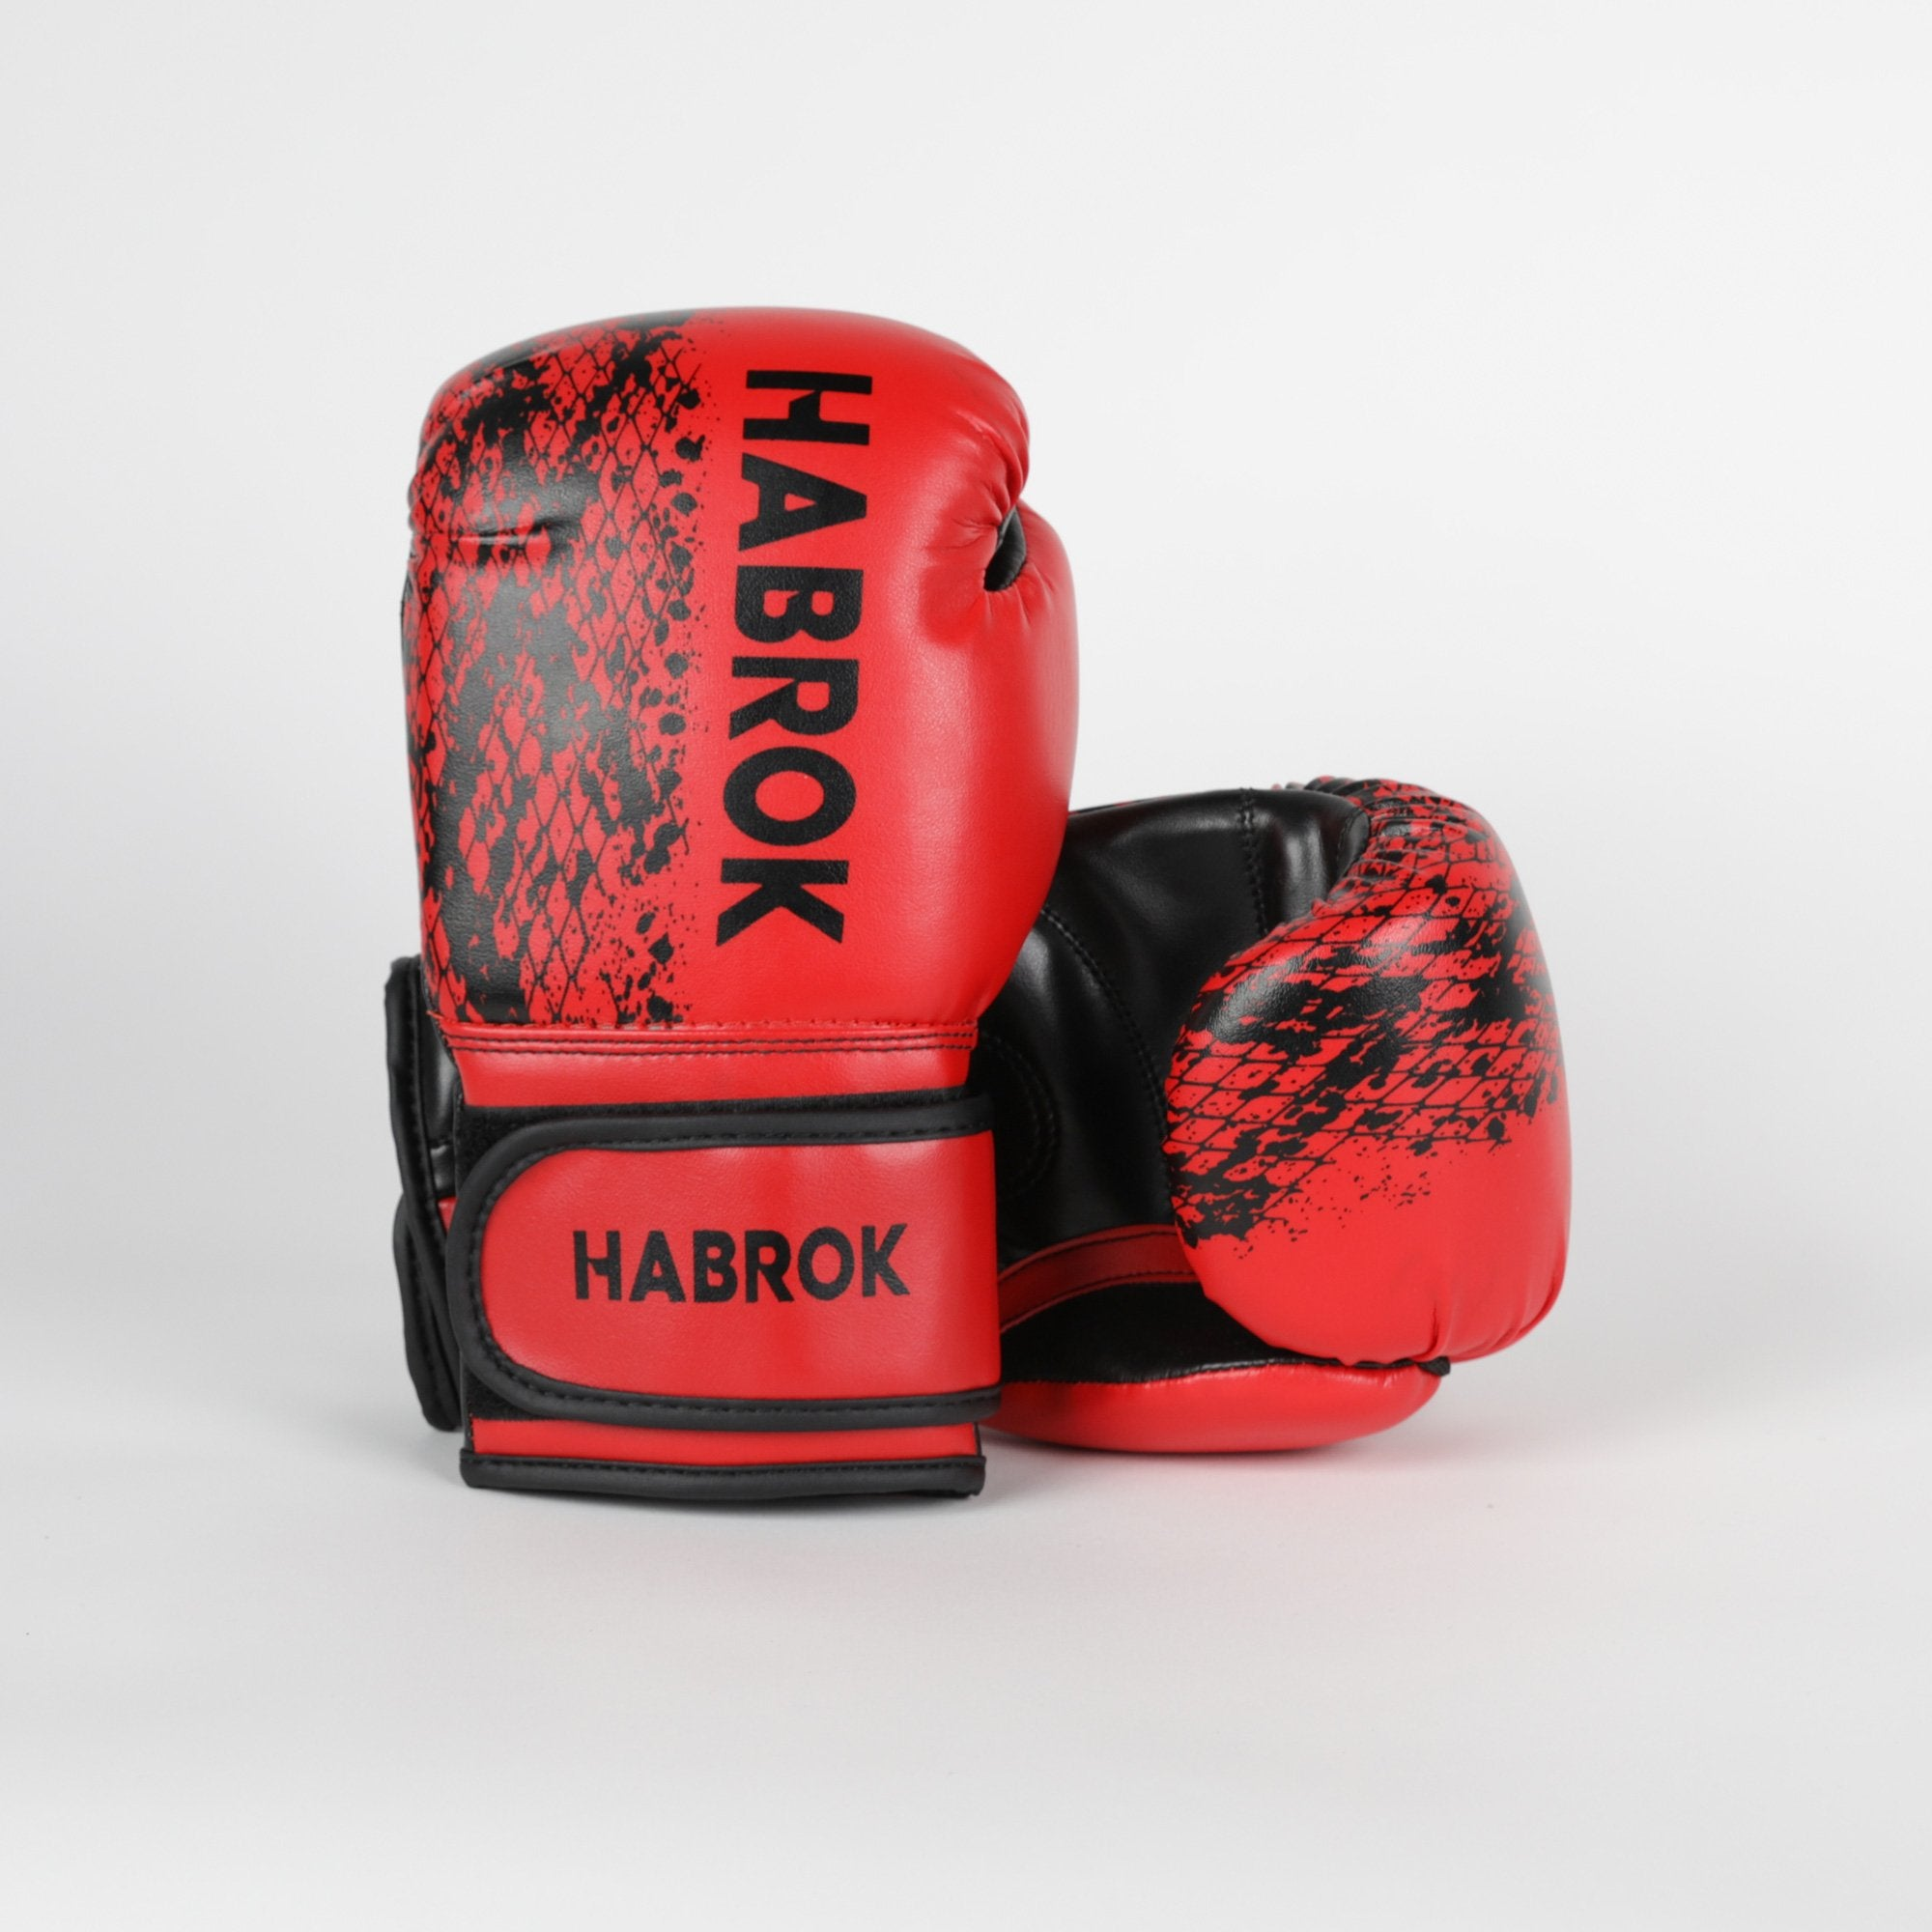 Habrok Boxing Gloves 4oz / RED X1 | Boxing Gloves | Kids | Habrok | Red